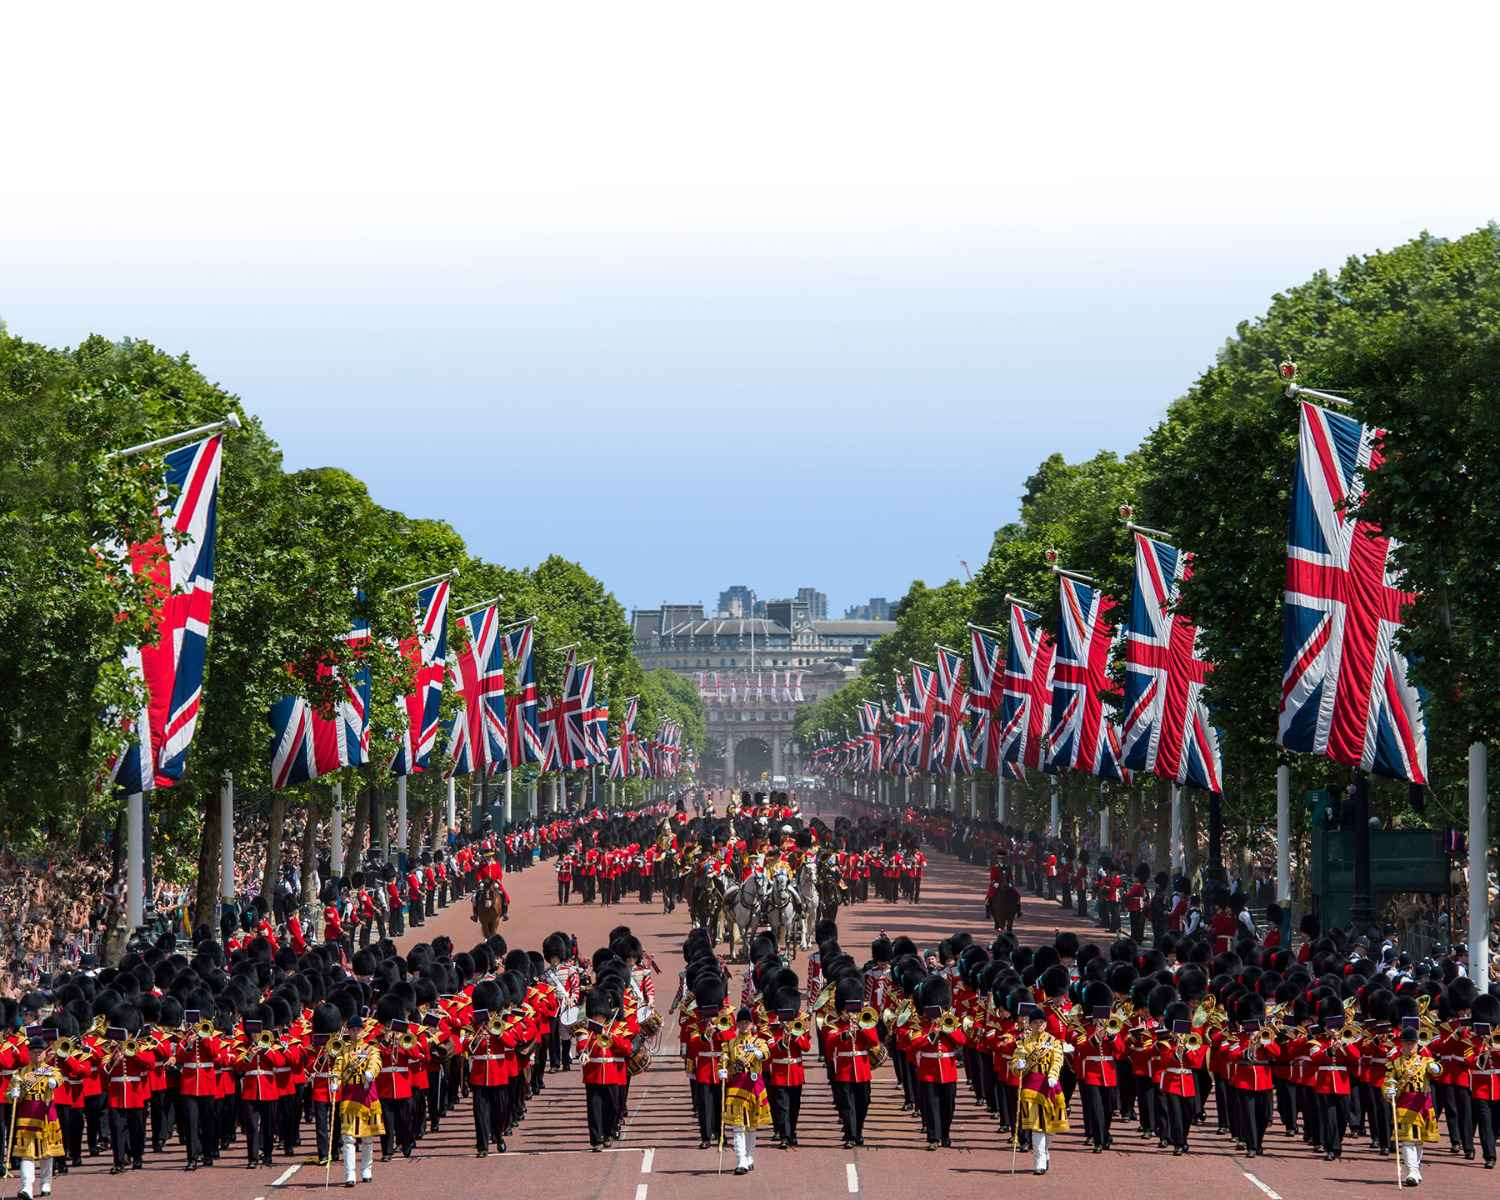 Soldiers of the Mass Bands and Household division marching in front of and behind HRH Queen Elizabeth returning back to Buckingham Palace.